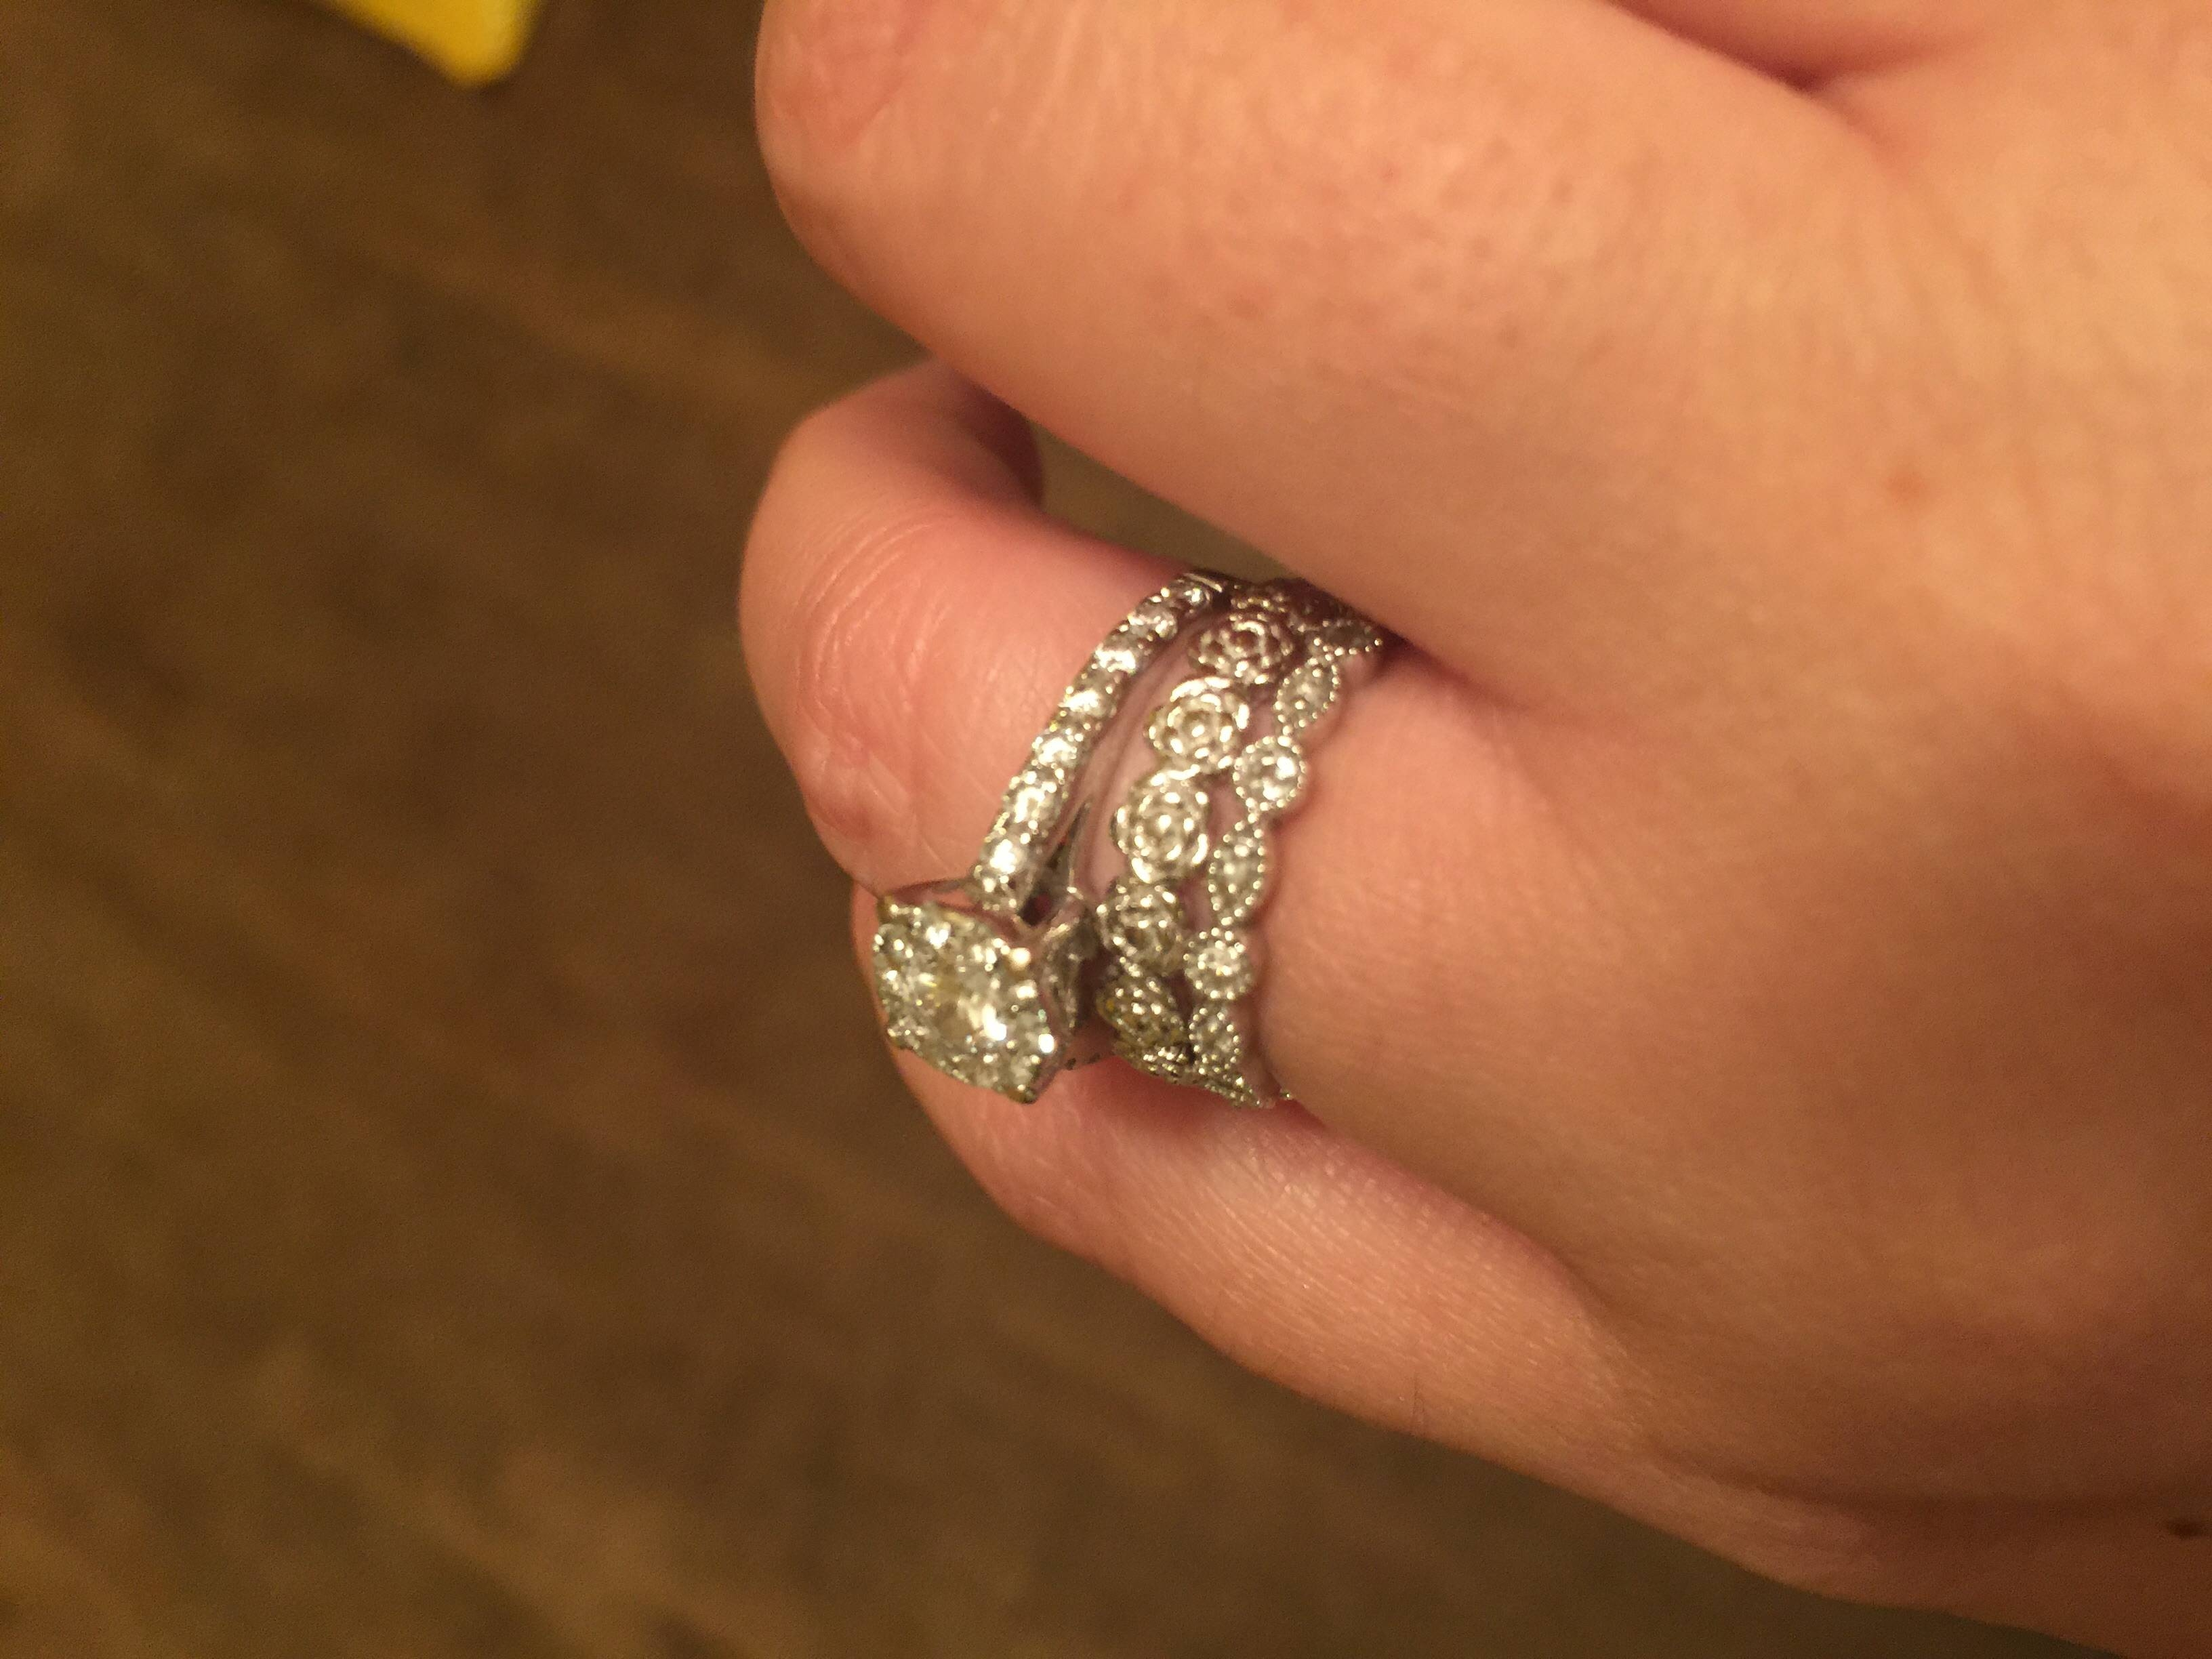 New Anniversary Bands Came Today! Pics :) – Weddingbee With Regard To Most Up To Date One Year Anniversary Rings (View 8 of 25)